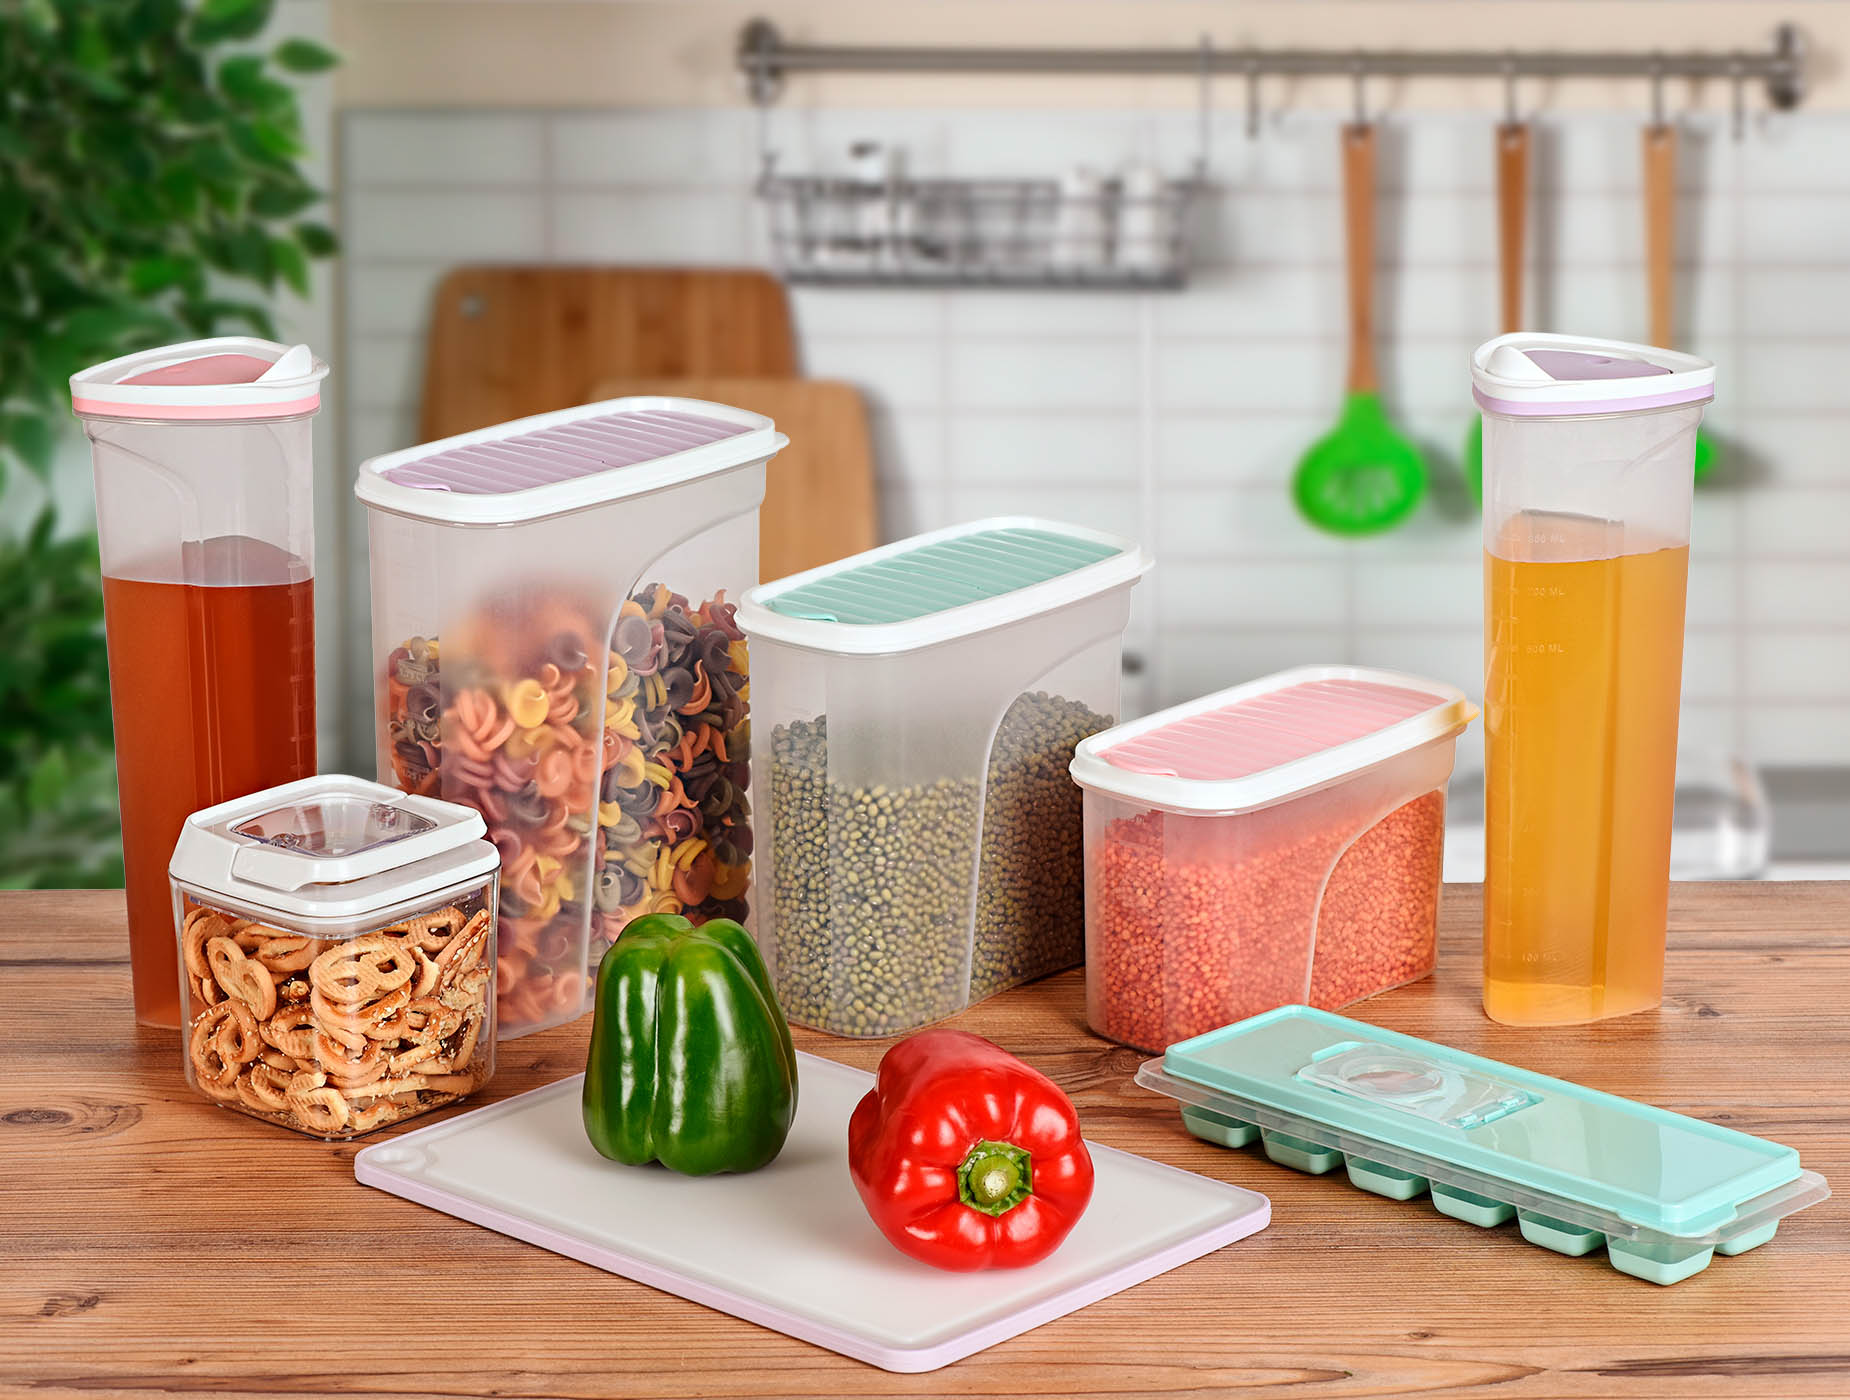 Kitchen Storage & Cooking Accessories